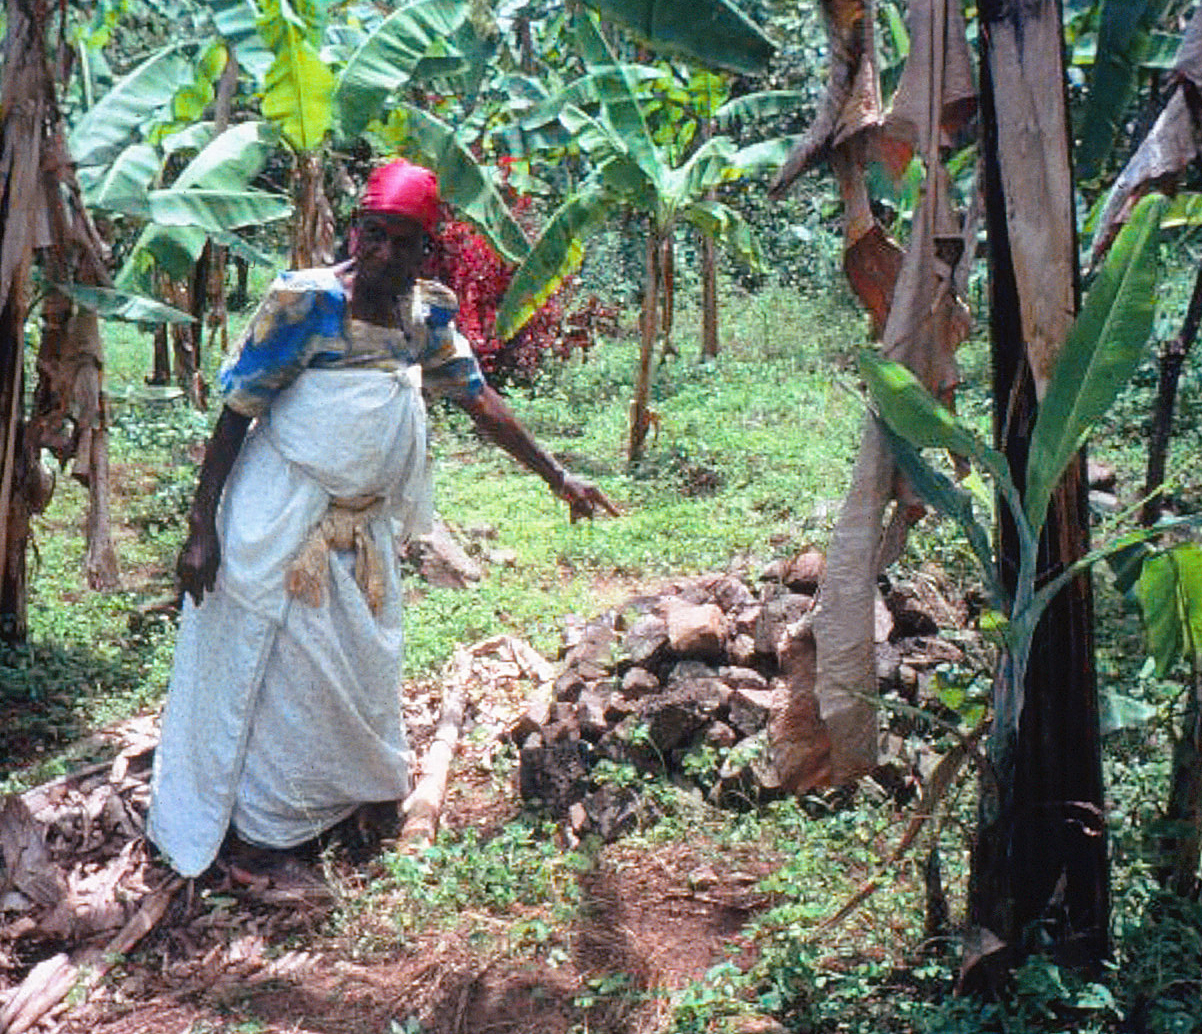 Rakai-District-woman-shows-all-the-HIV-graves-of-her-family--200-(deleted-4db21d75-72a898-5aa0d5fa).jpg